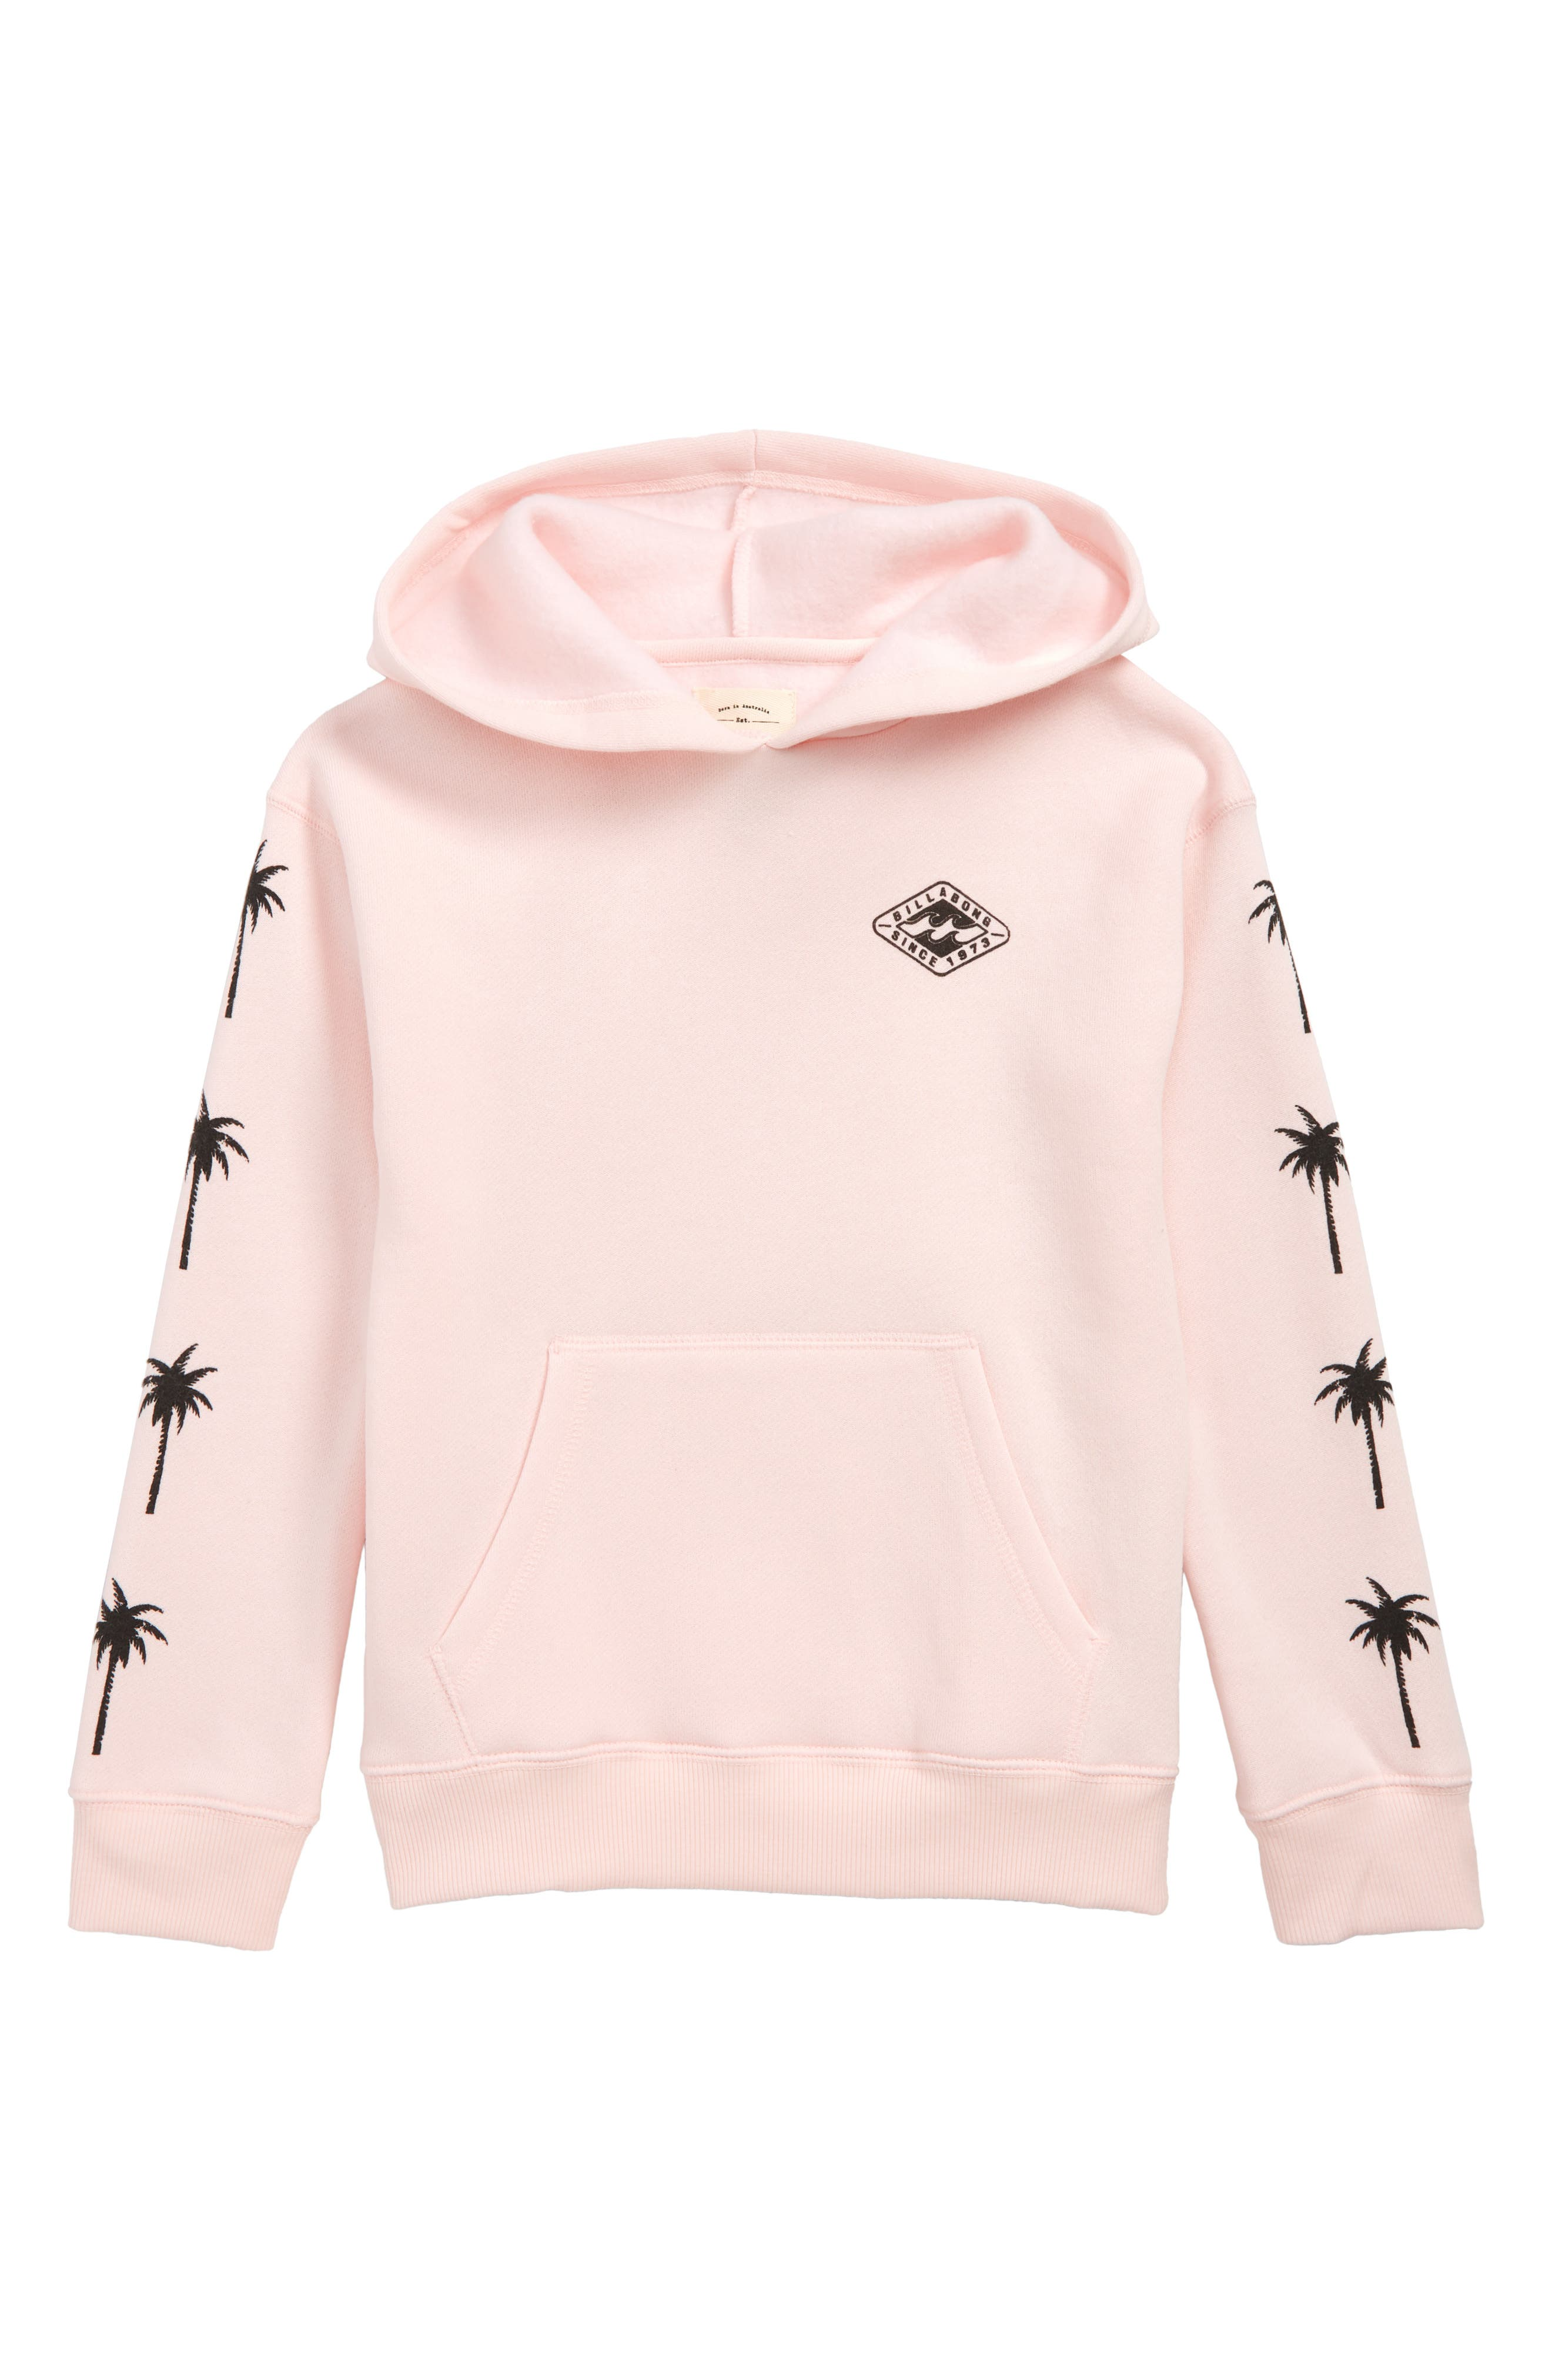 Stay Wild Pullover Hoodie,                             Main thumbnail 1, color,                             PINK LILY